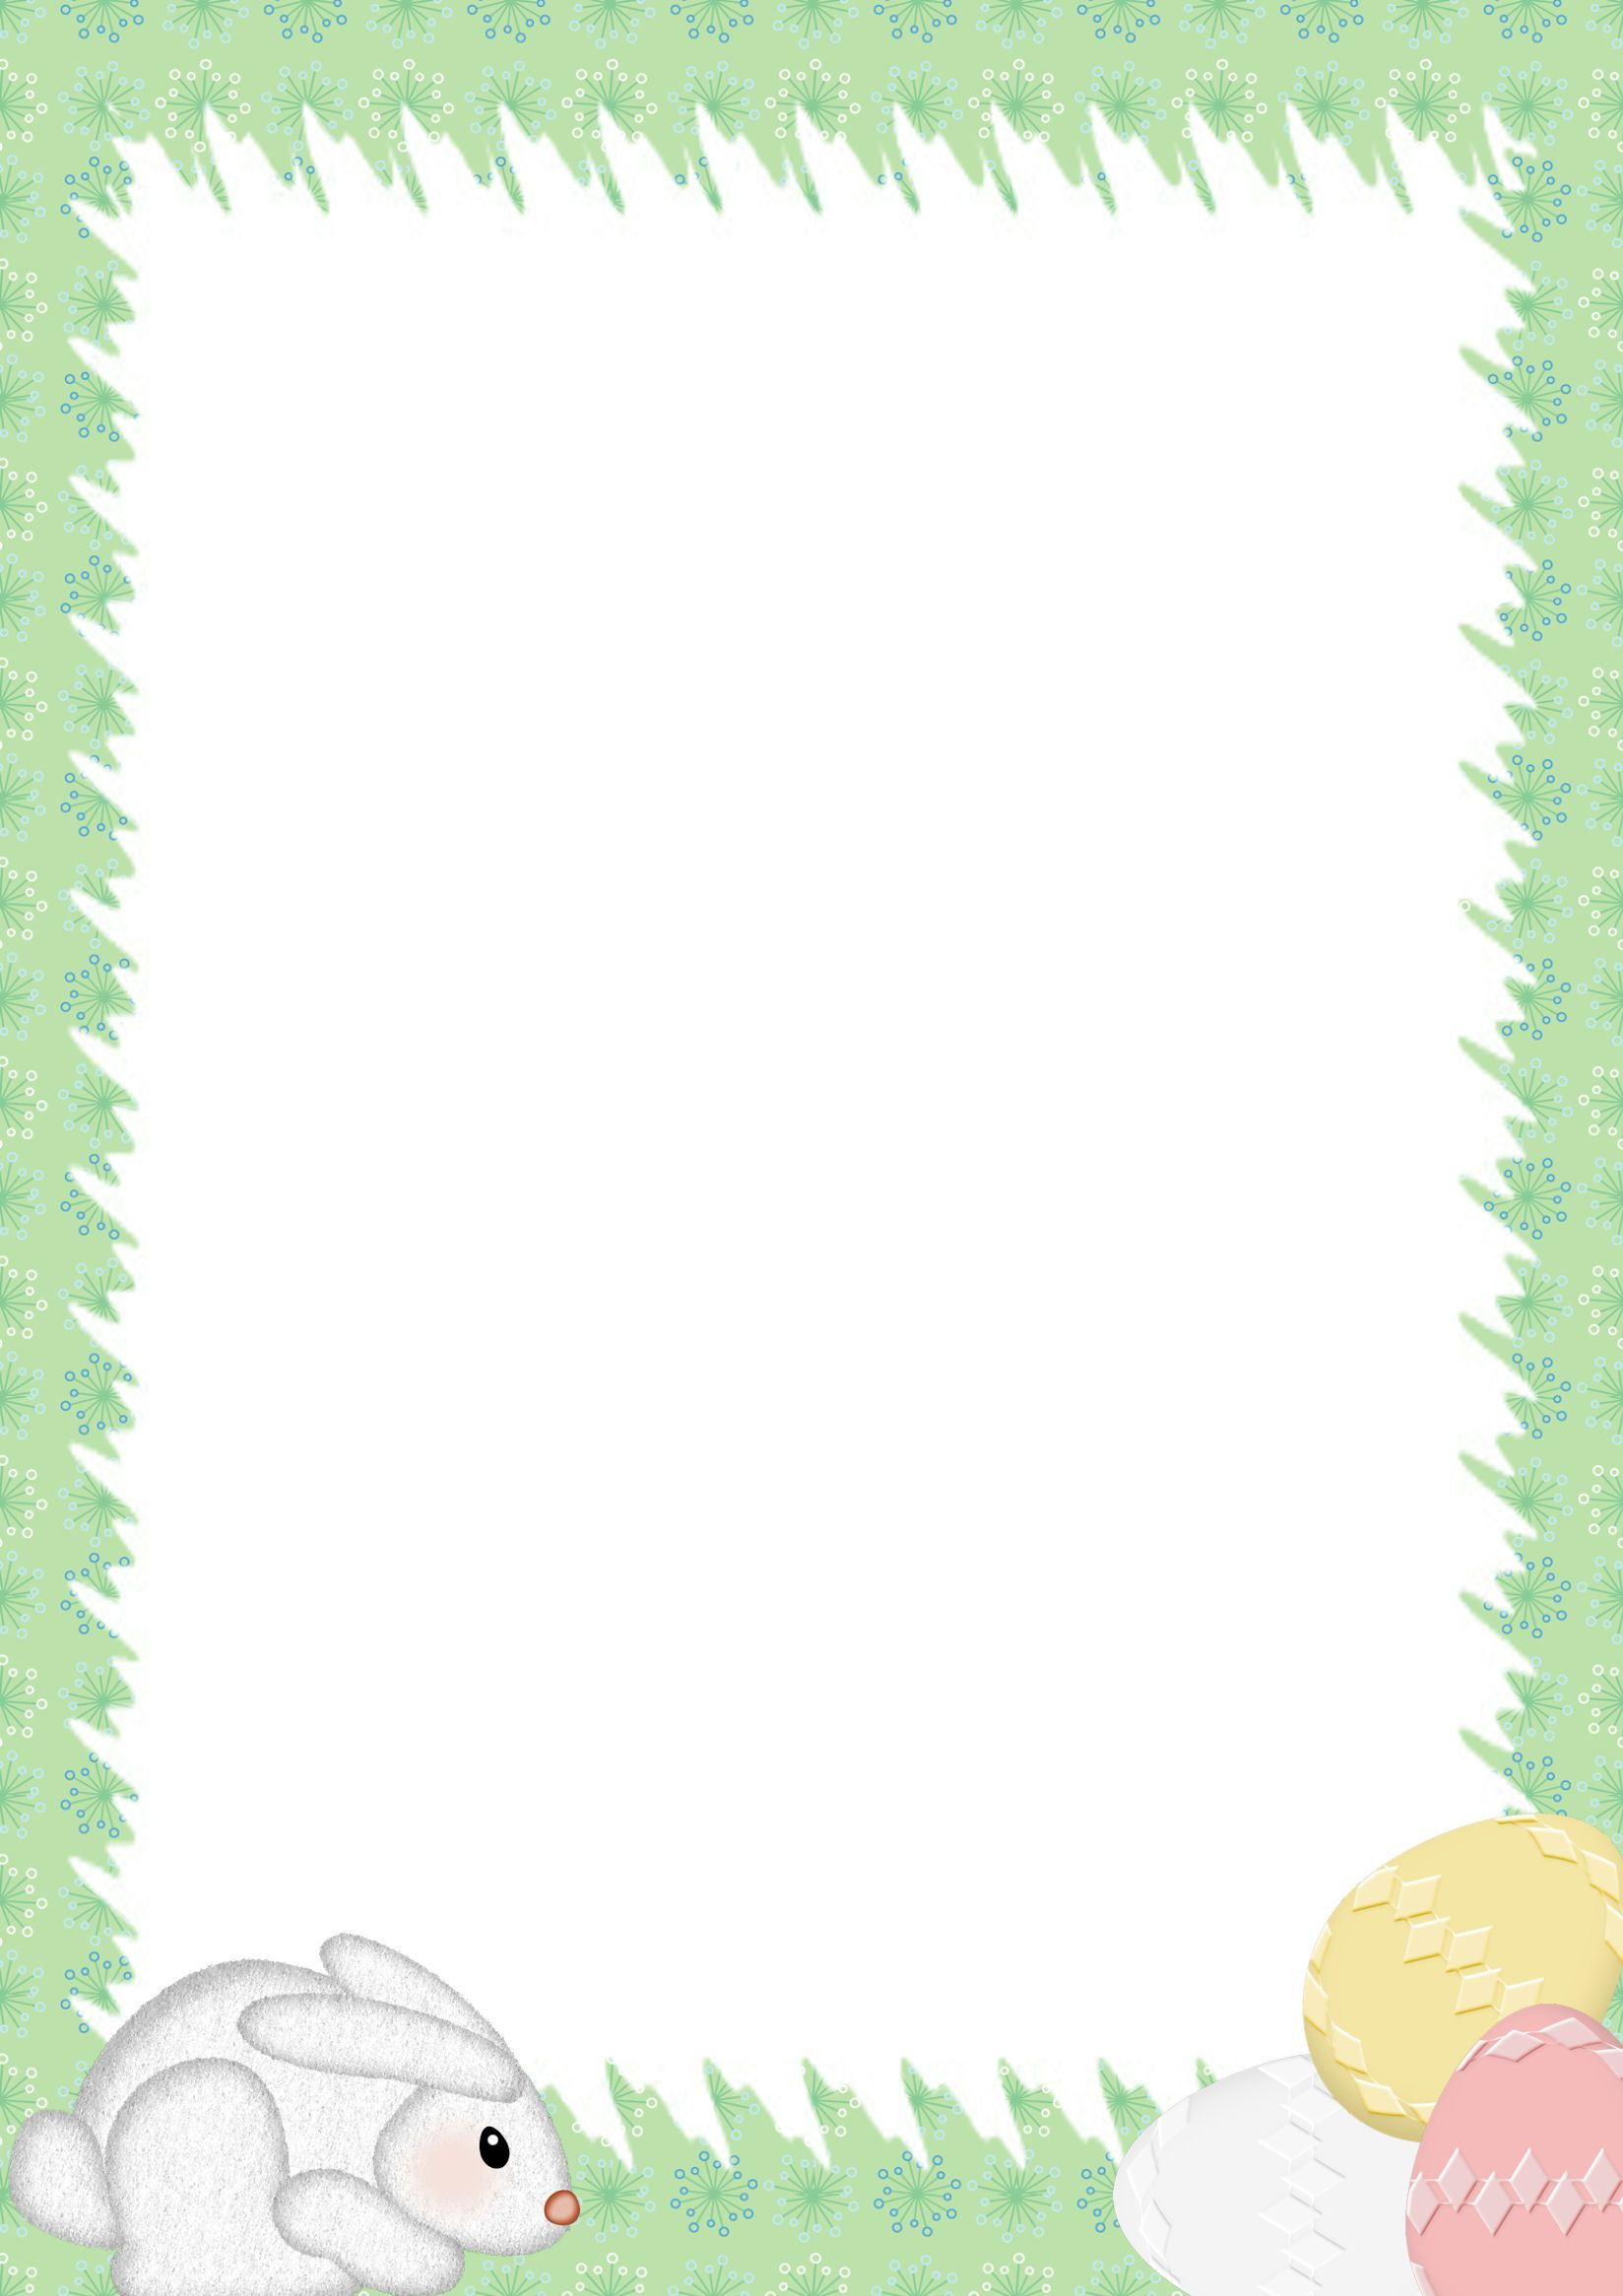 Easter Stationery | Microsoft Word Border Templates | Easter For Bulletin Board Template Word